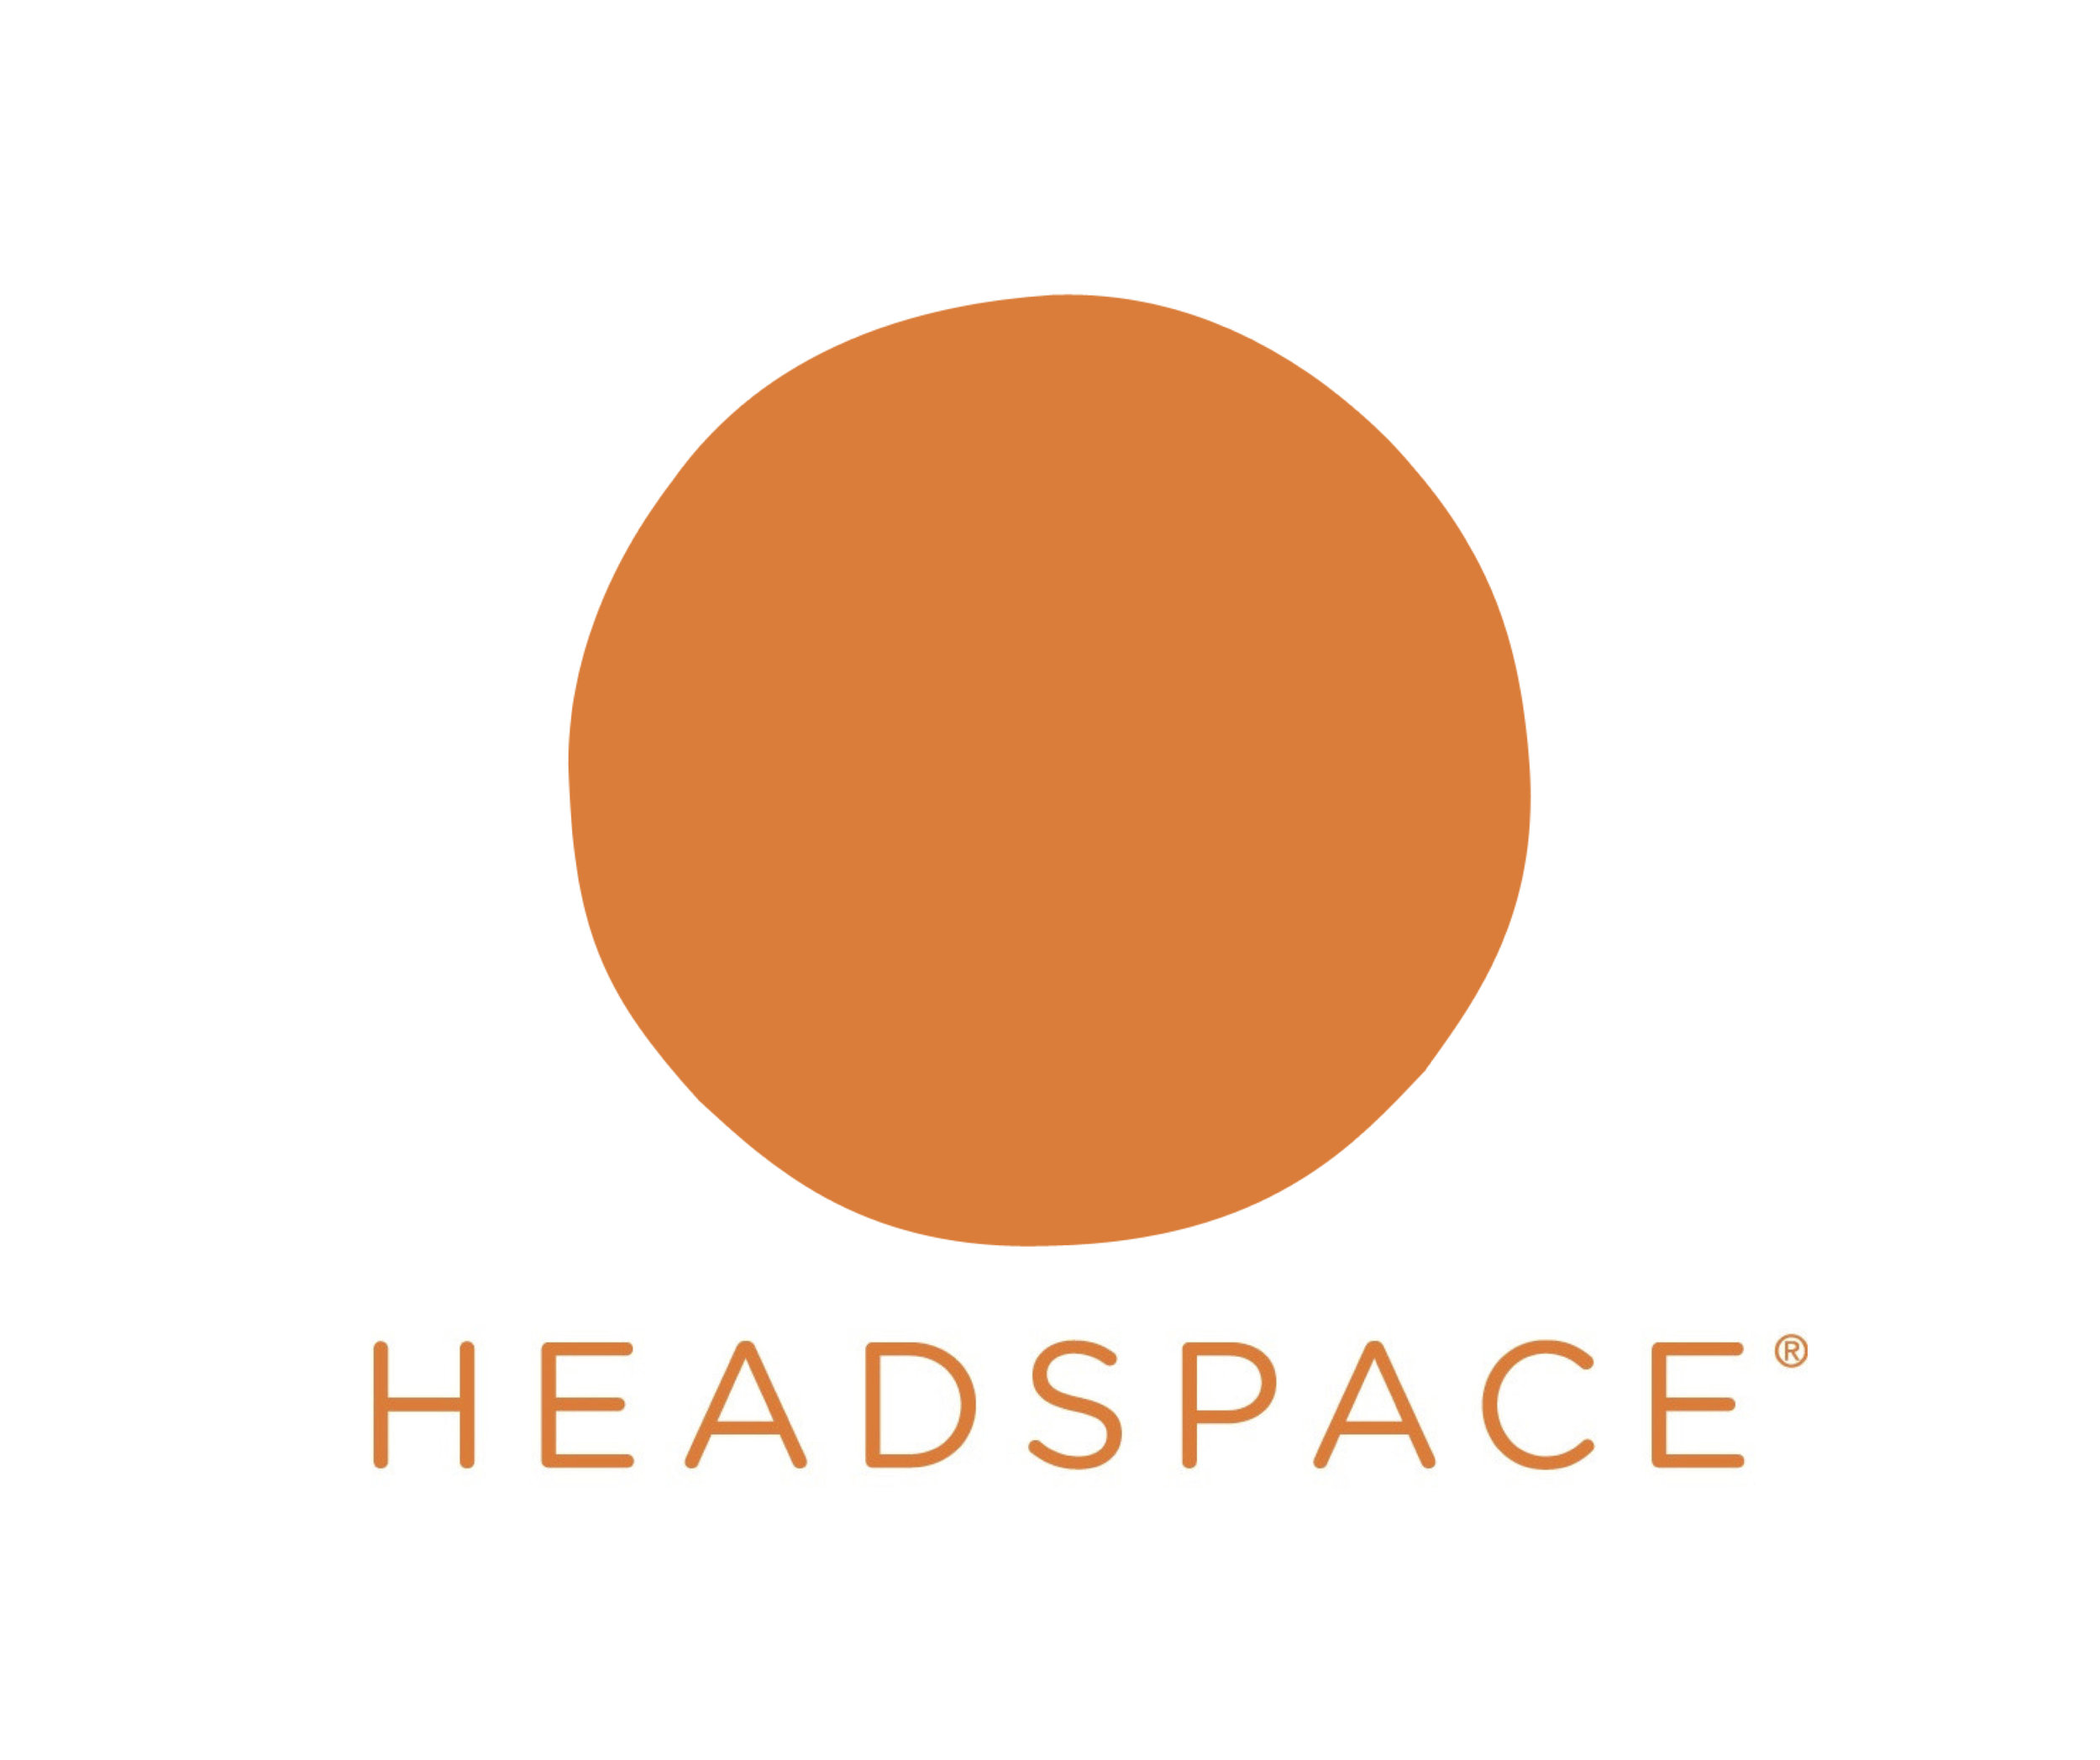 Headspace - I recommend this app as a good introduction to meditation. Its free 10-day program will help you learn how to meditate and incorporate mindfulness and stress management into your life.